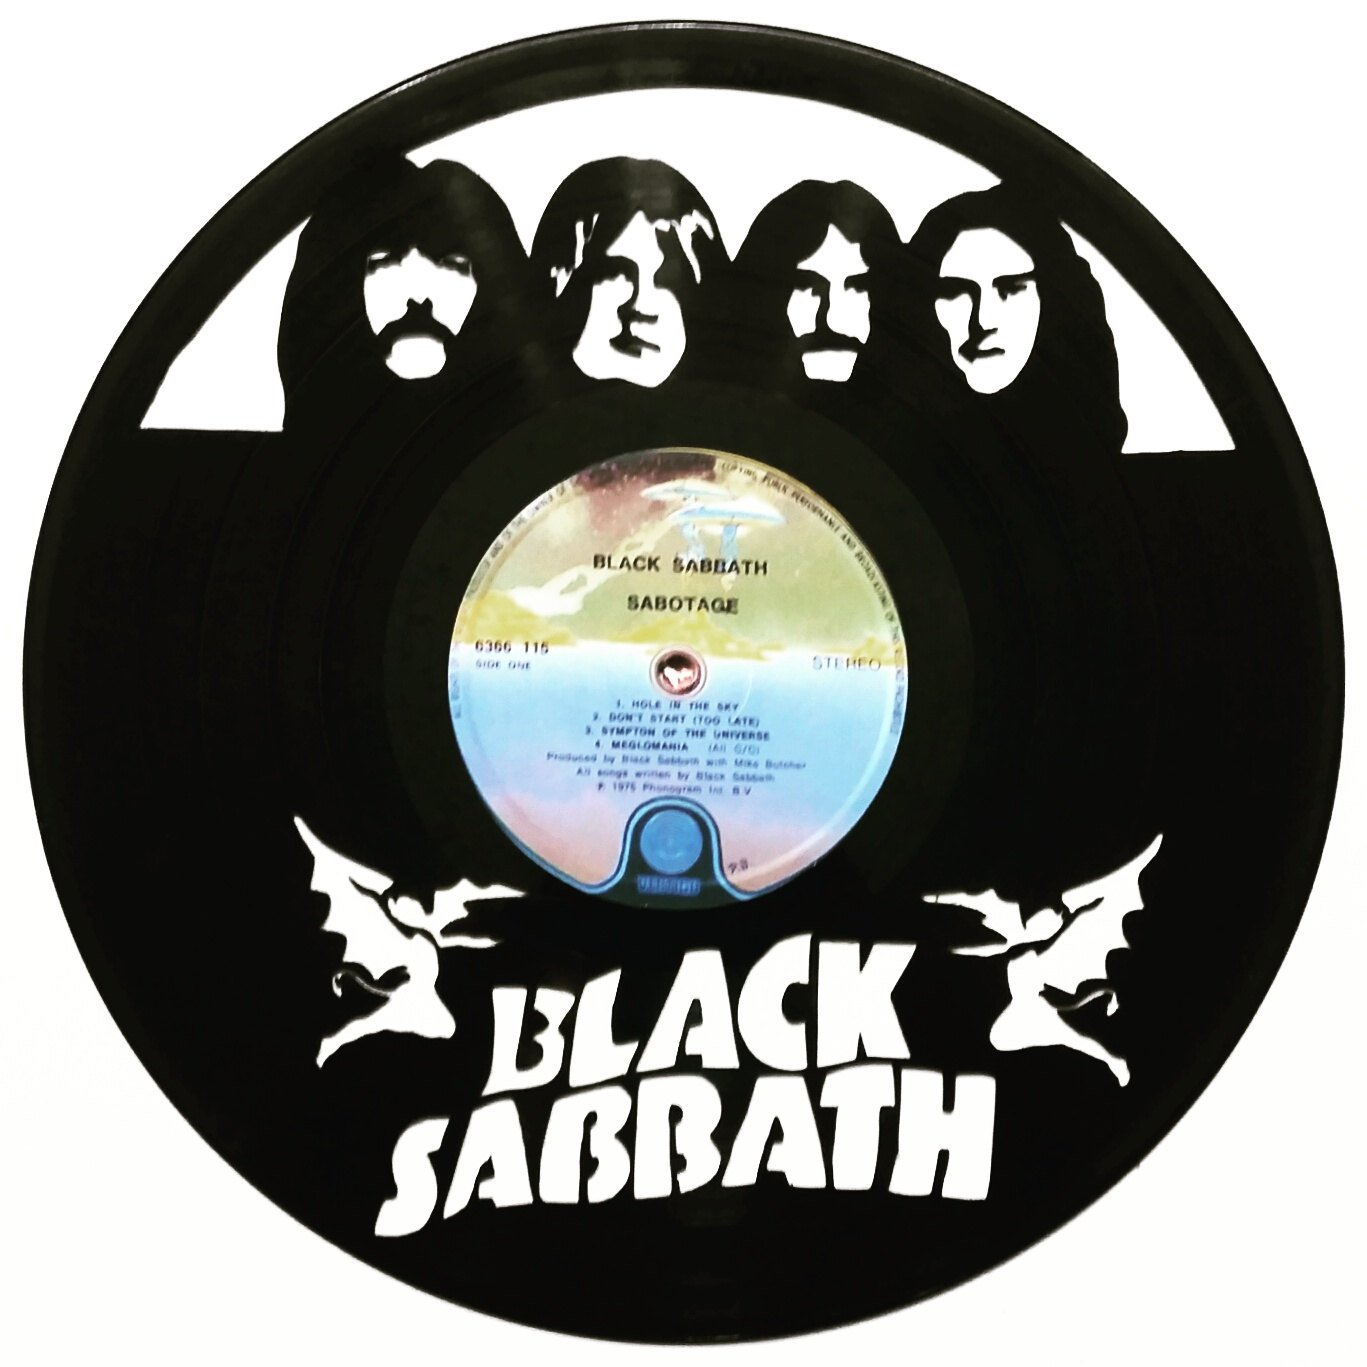 1367x1367 Black Sabbath, Band Members, Ozzy Silhouette Vinyl Record Art.